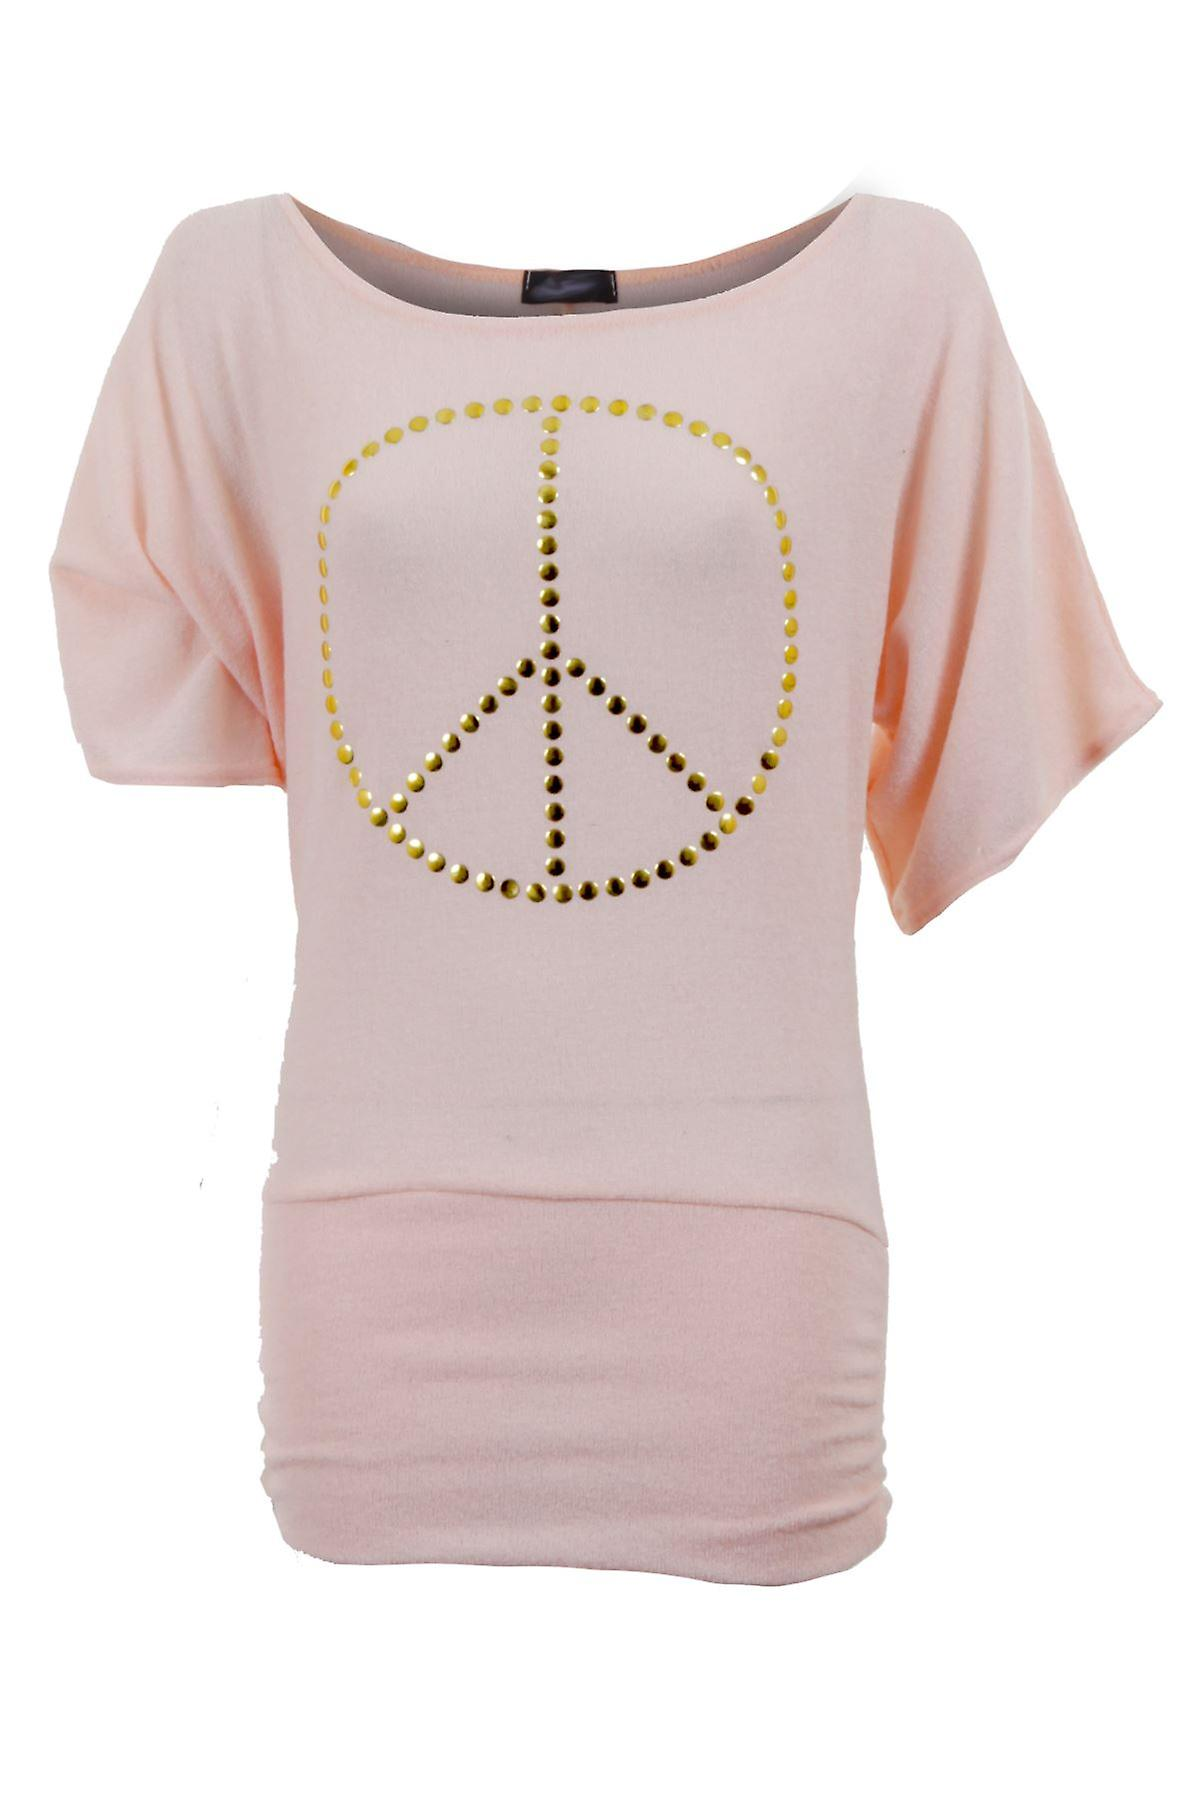 Ladies Half Sleeve Peace Bow Print Batwing Knitted Long T Shirt Womens Top